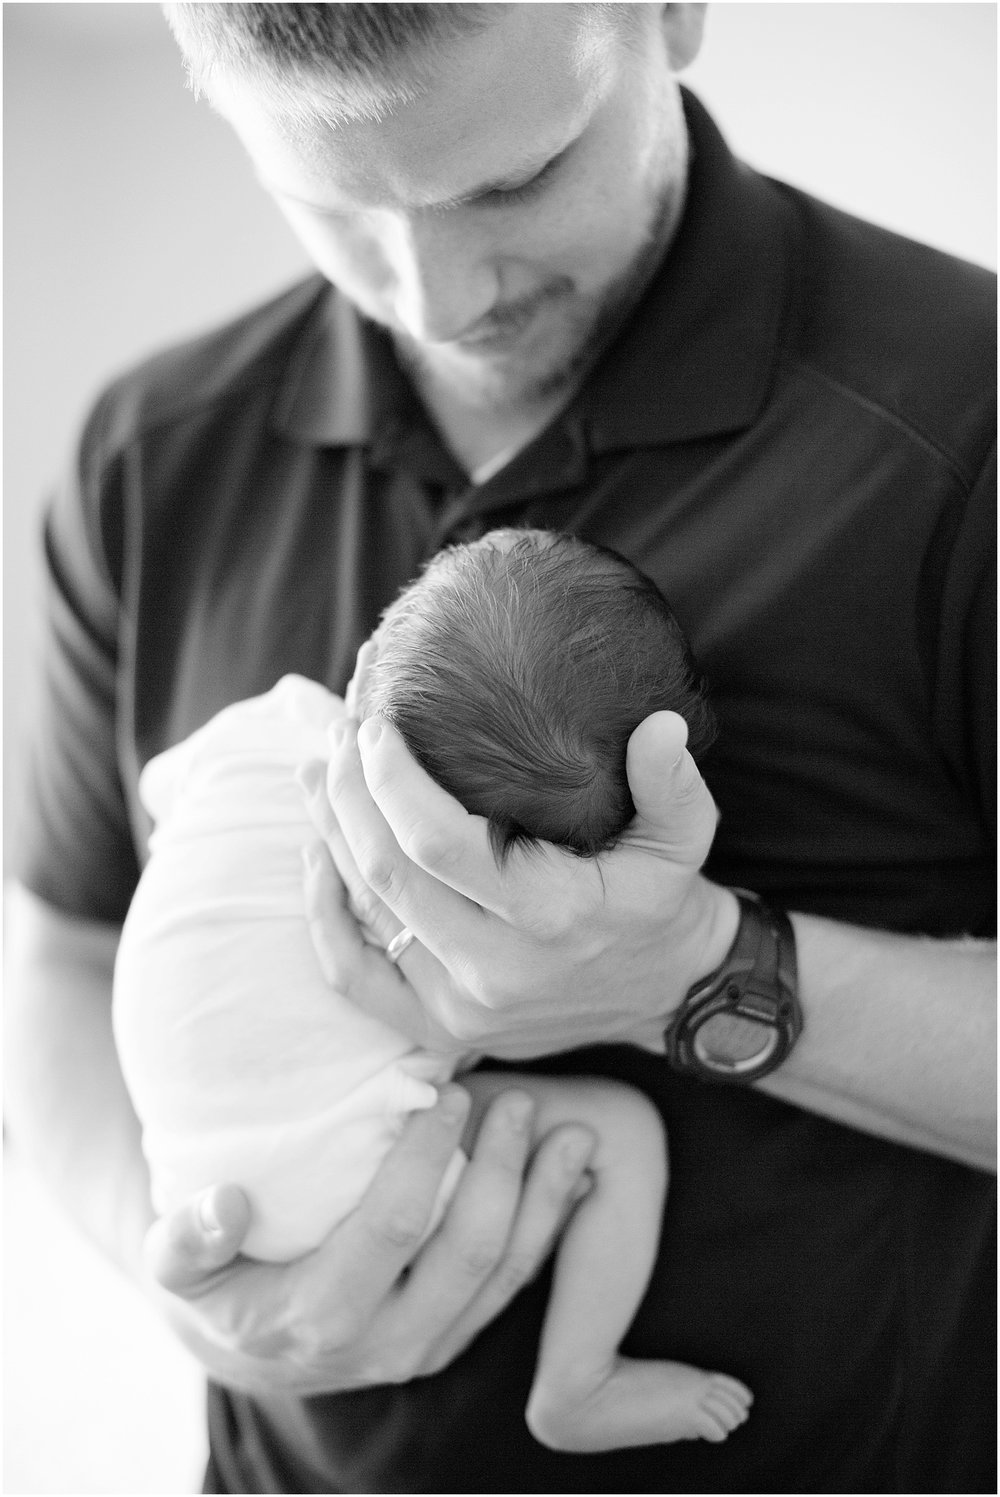 Ashley Powell Photography Zander Newborn Blog Images_0010.jpg